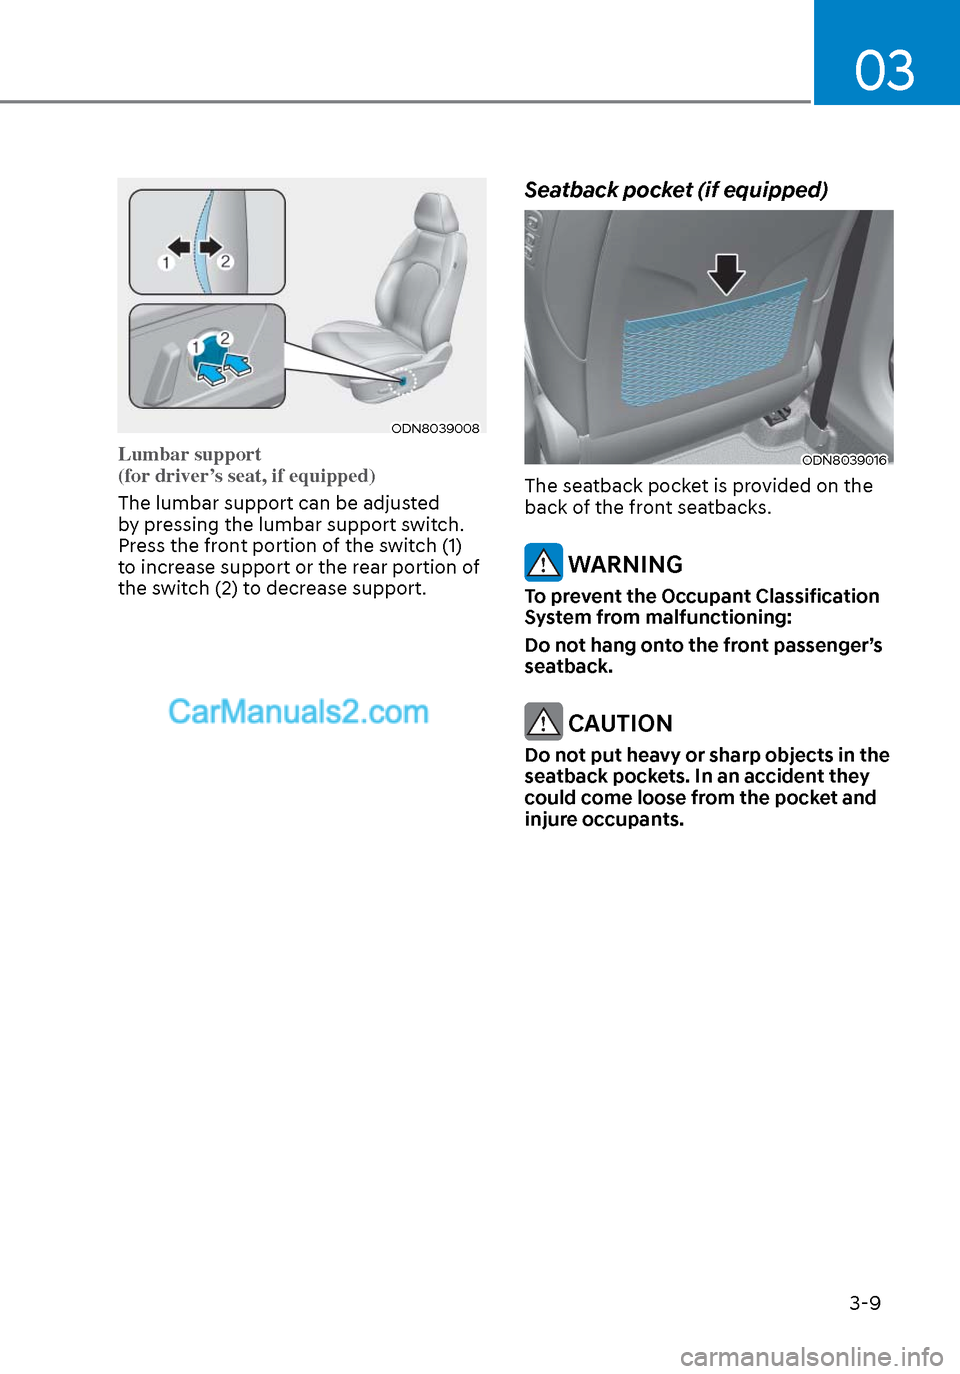 Hyundai Sonata 2020 Owners Guide 03 3-9 ODN8039008ODN8039008 Lumbar support  (for driver's seat, if equipped)  The lumbar support can be adjusted  b y pressing the lumbar support switch.  Press the front portion of the switch (1)